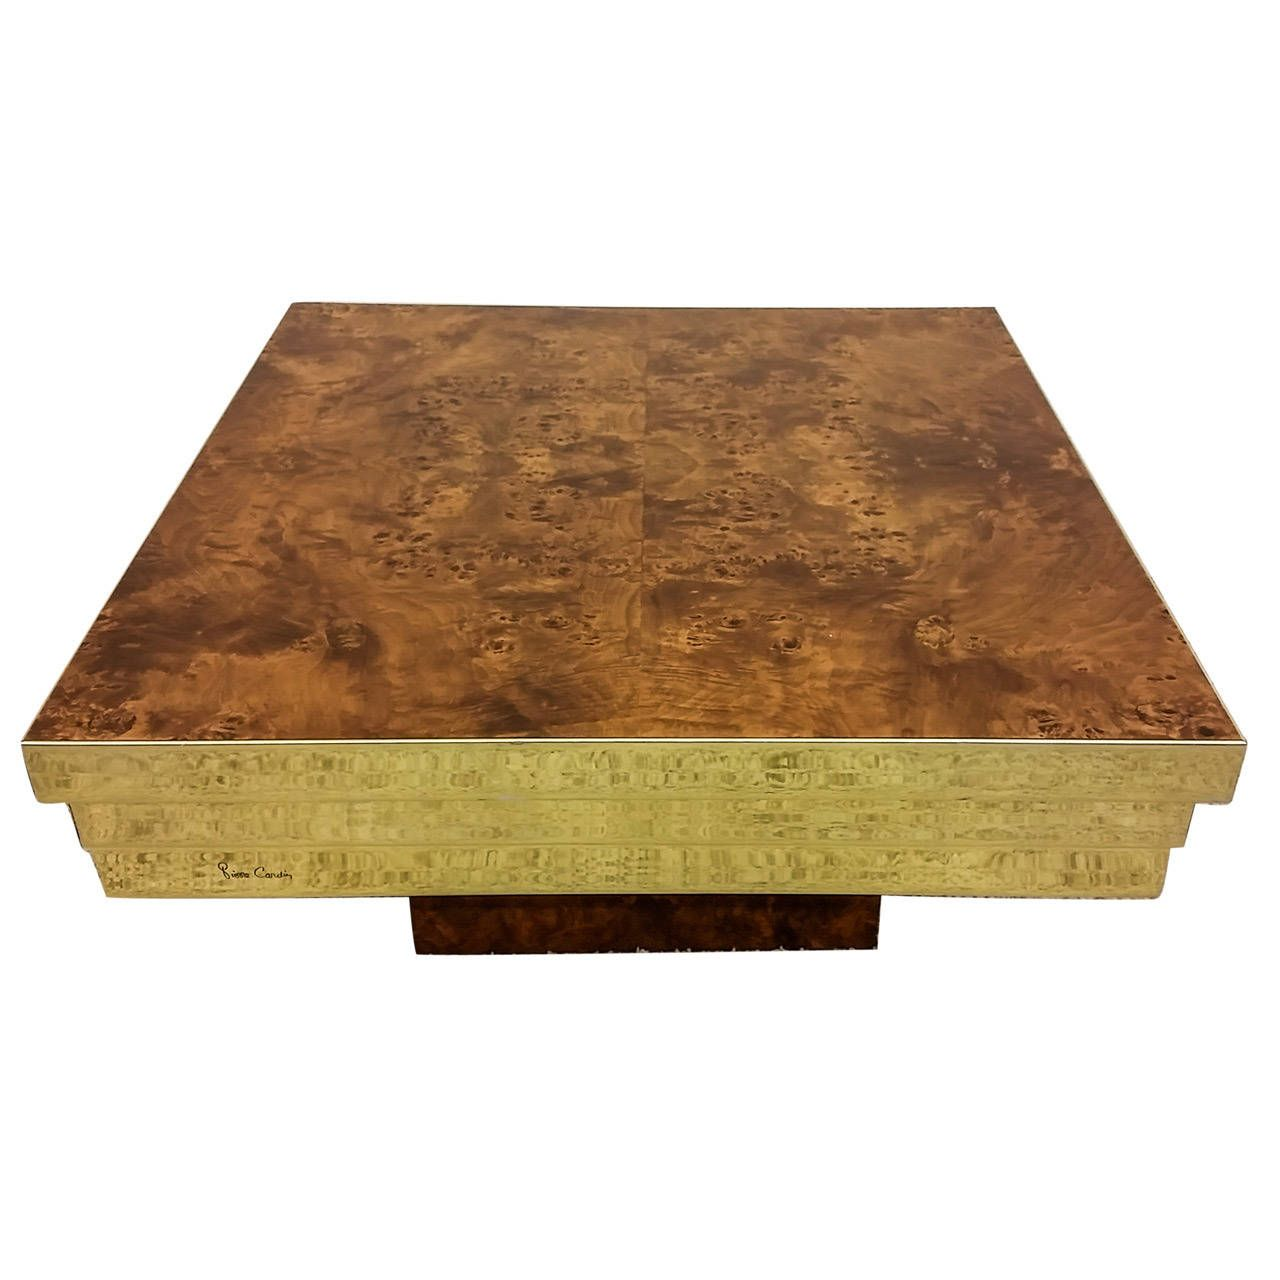 - A Stunning Pierre Cardin Brass And Burl Wood Coffee Table. The